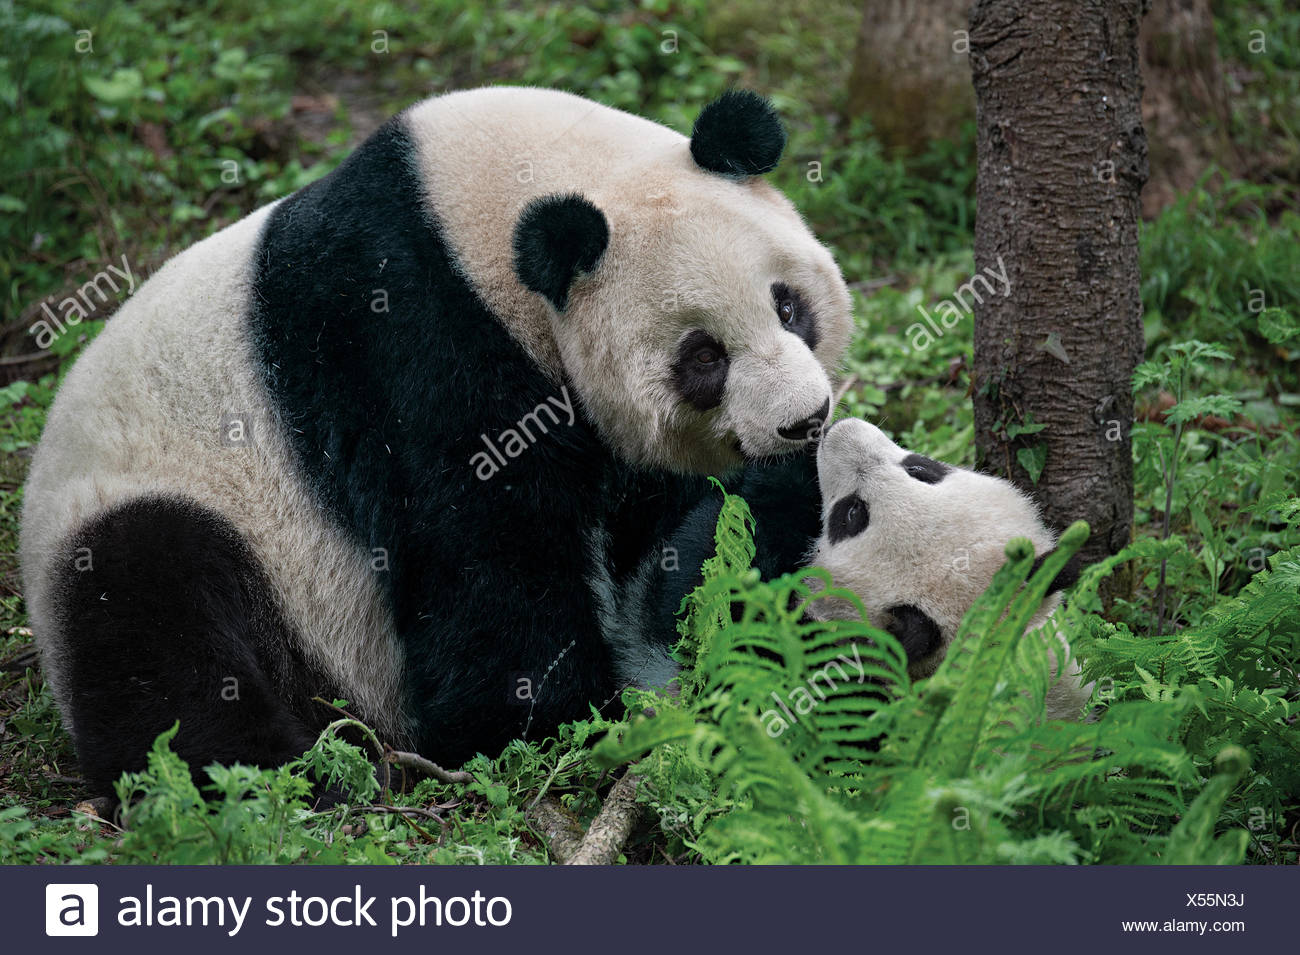 A giant panda mother plays with her cub inside their enclosure at the Wolong Nature Reserve. - Stock Image